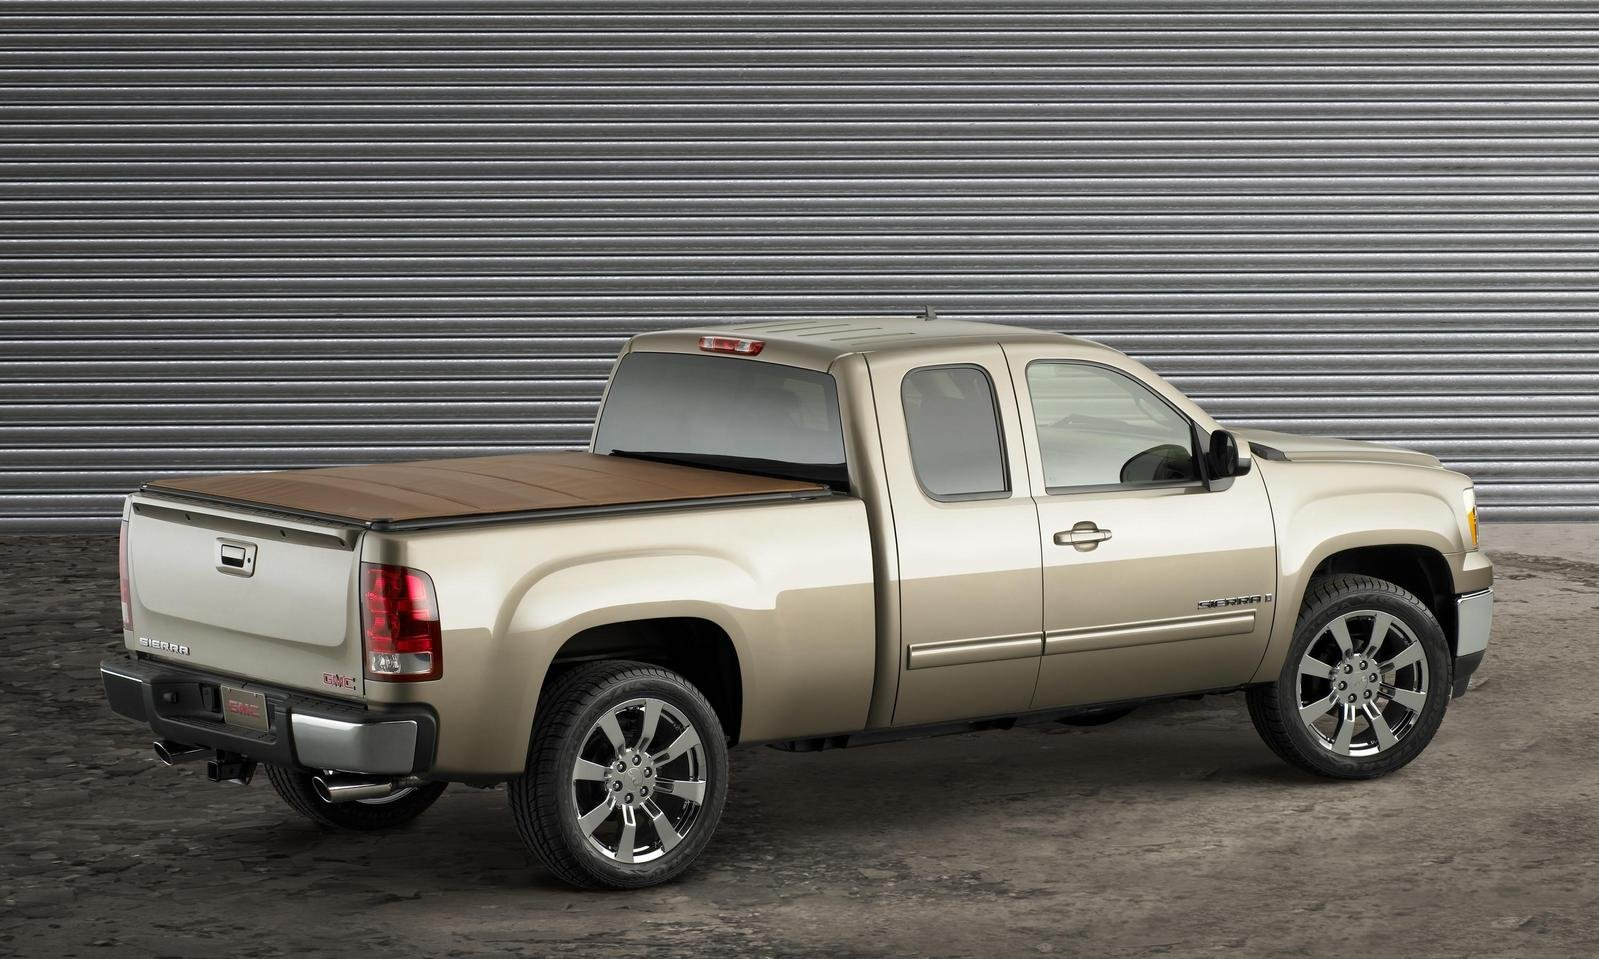 2007 gmc sierra 1500 texas edition picture 108967 car review top speed. Black Bedroom Furniture Sets. Home Design Ideas